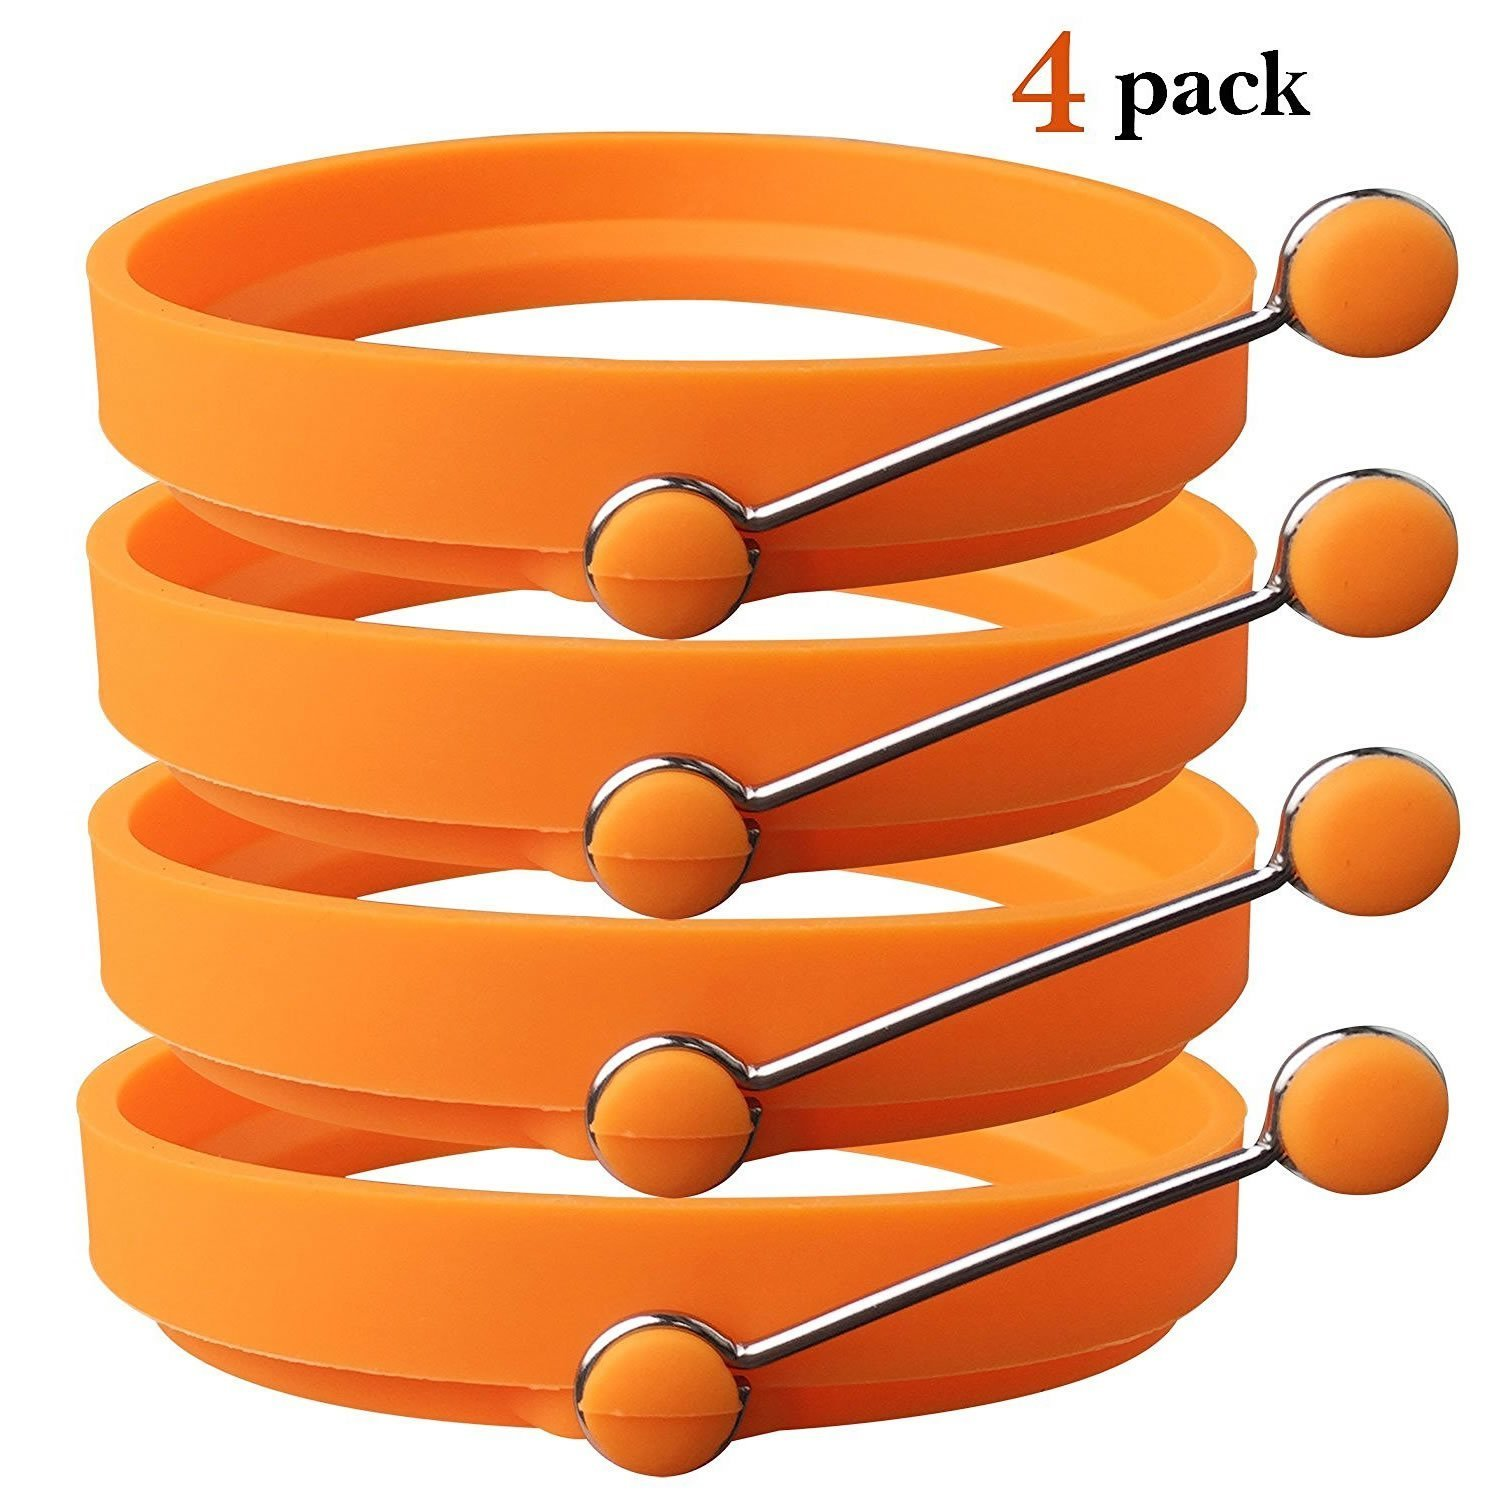 Egg Rings,Nonstick Silicone Round Egg Rings and Pancake Breakfast Sandwiches Mold Maker,4 Pack Orange Cipon